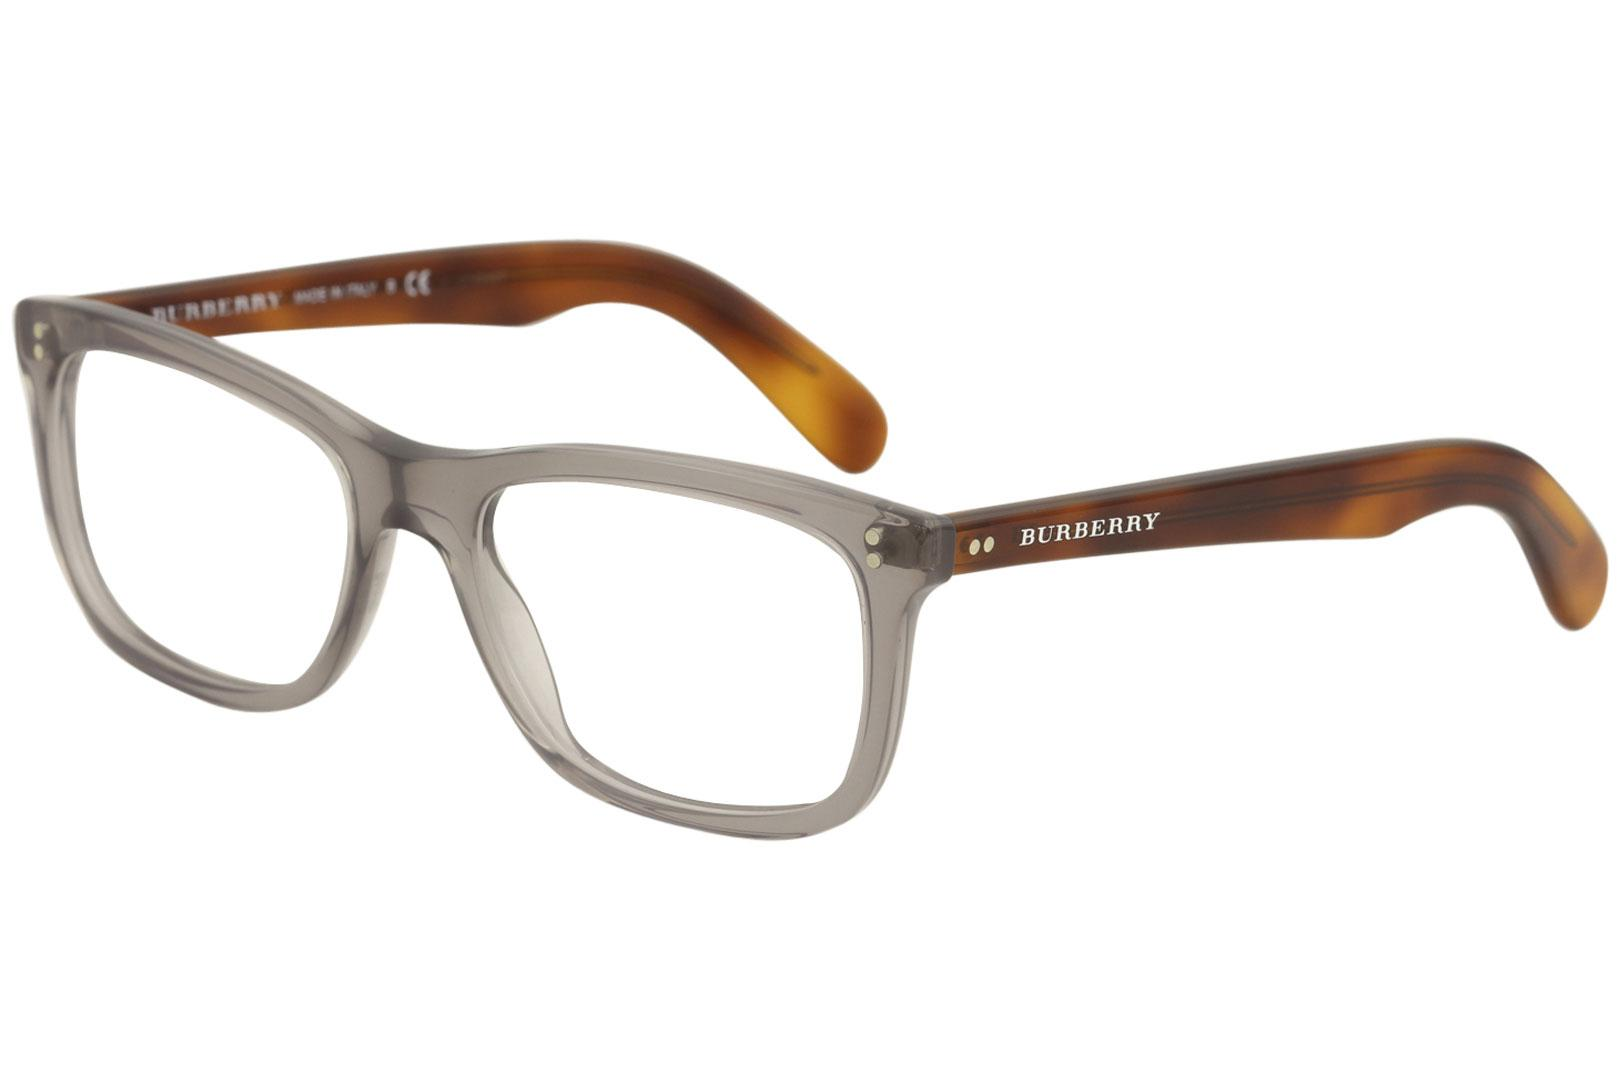 111ec990f2f1 Burberry Men's Eyeglasses BE2212 BE/2212 Full Rim Optical Frame by Burberry